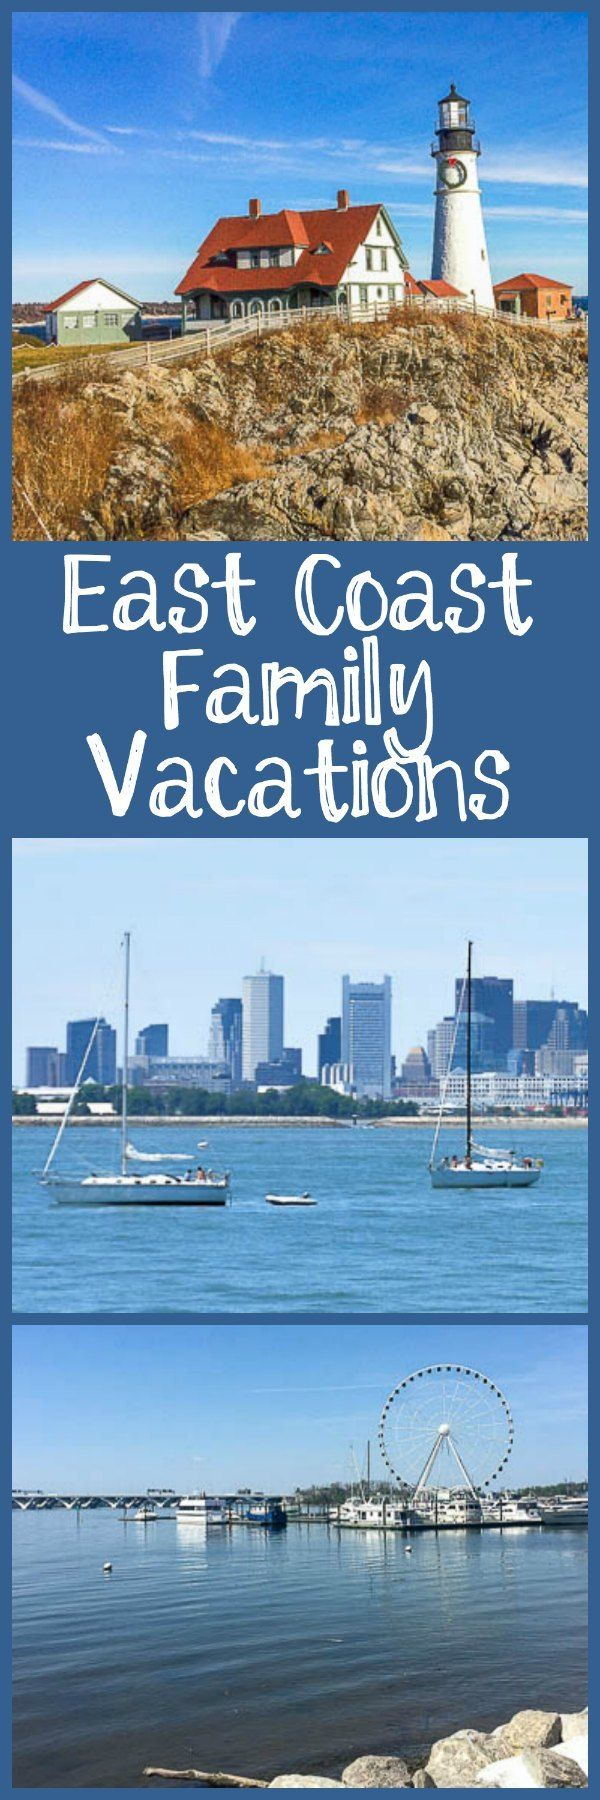 East Coast family vacations, including locations like Cape Cod, Washington DC, Boston, Raleigh, and more.